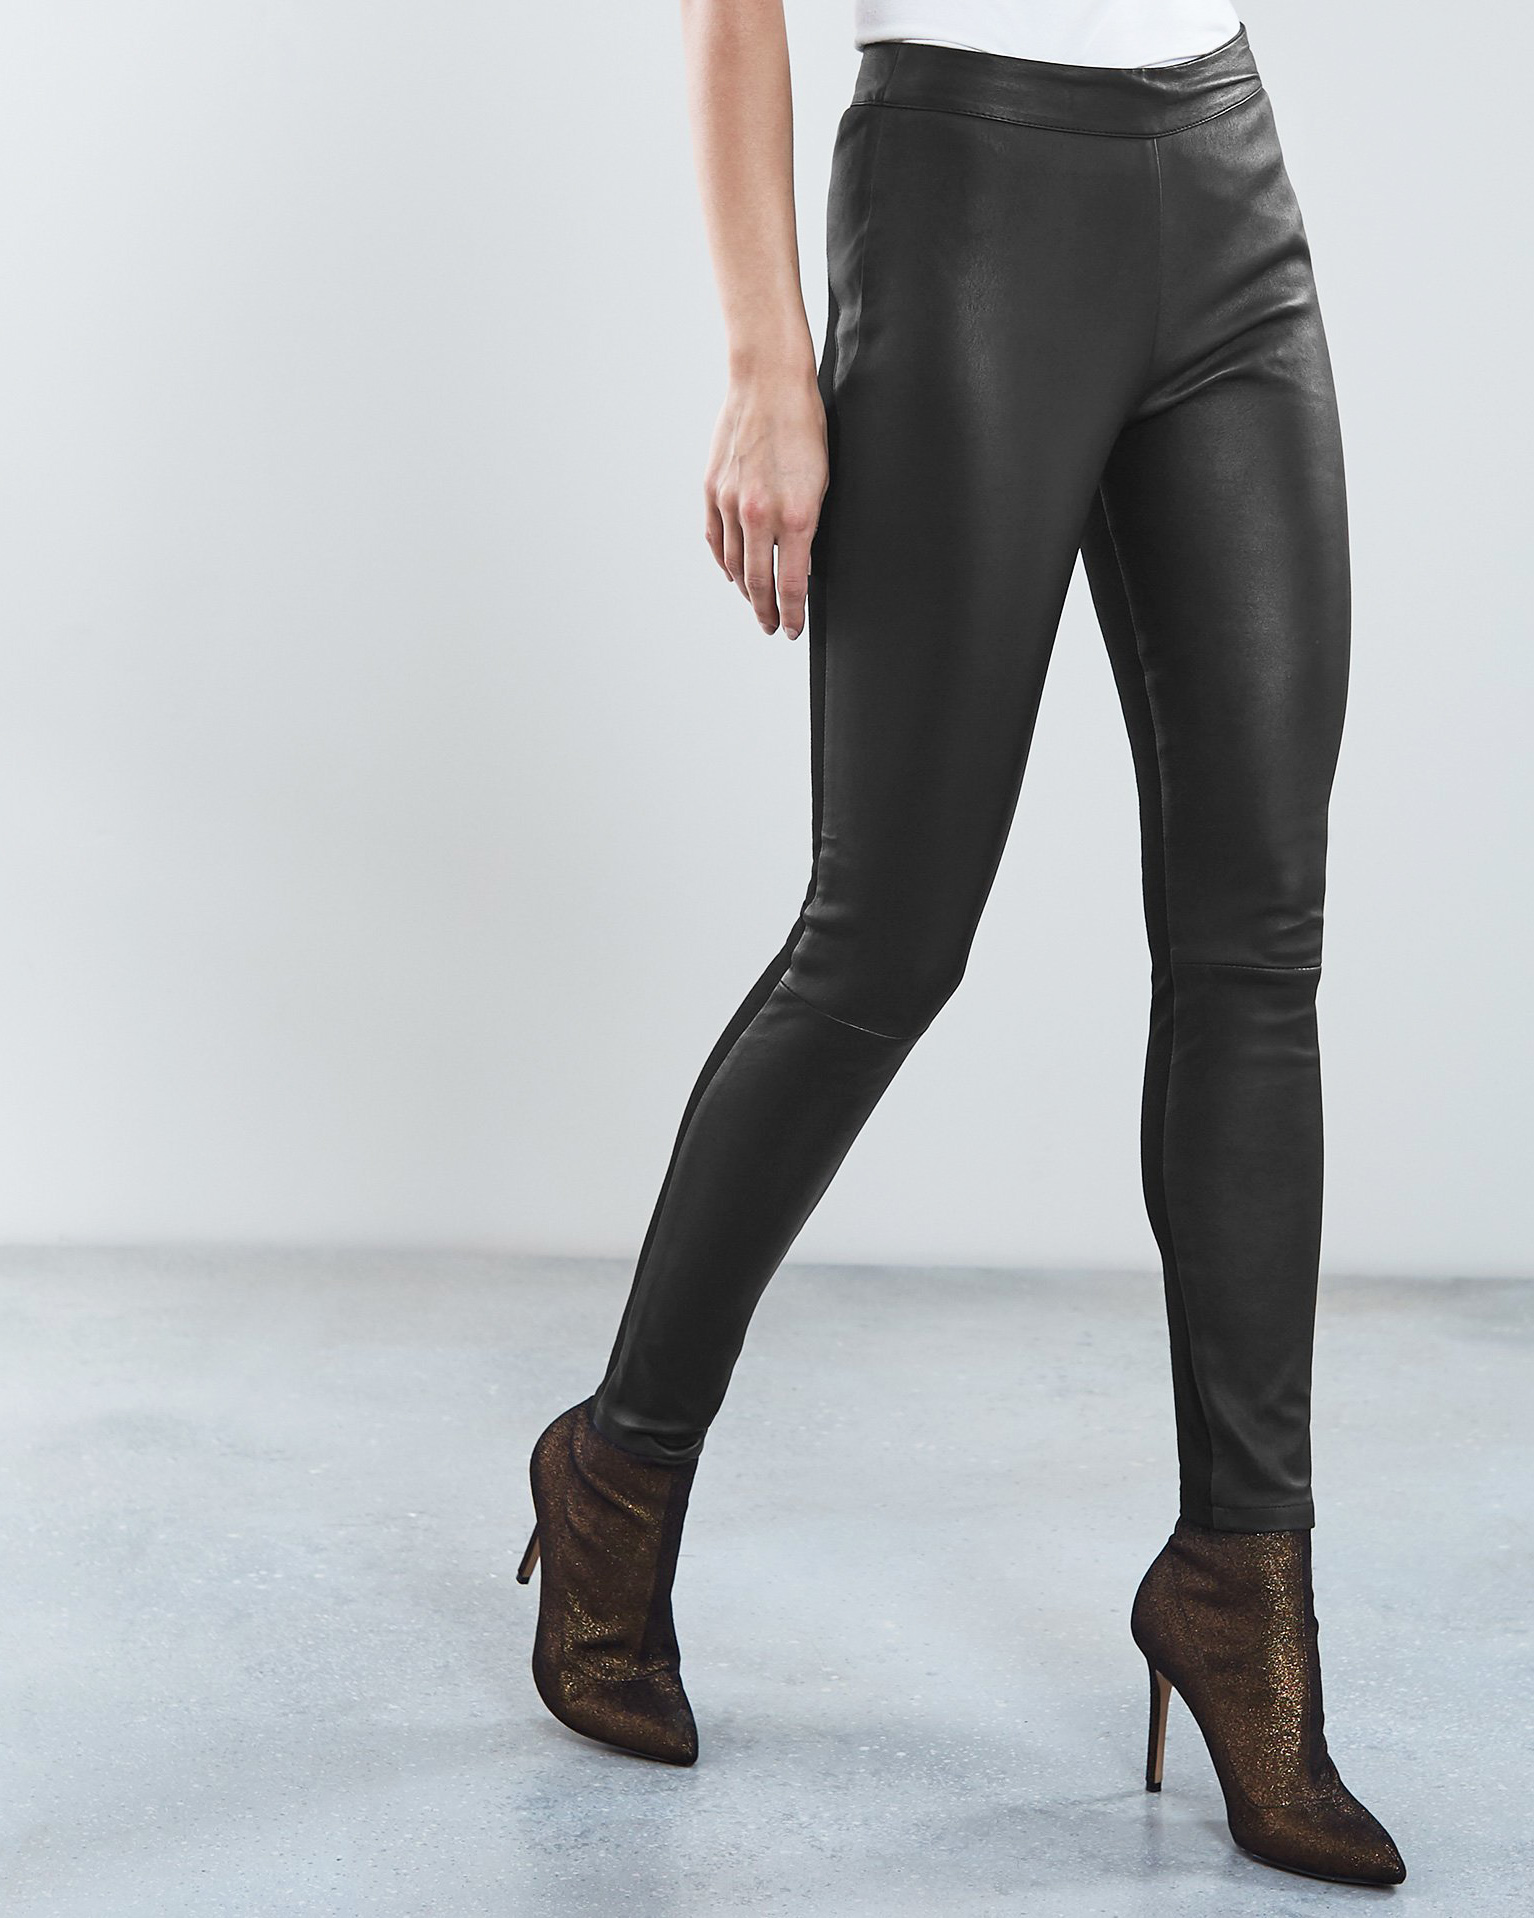 Valerie Leather Ponte Leggings (£375)